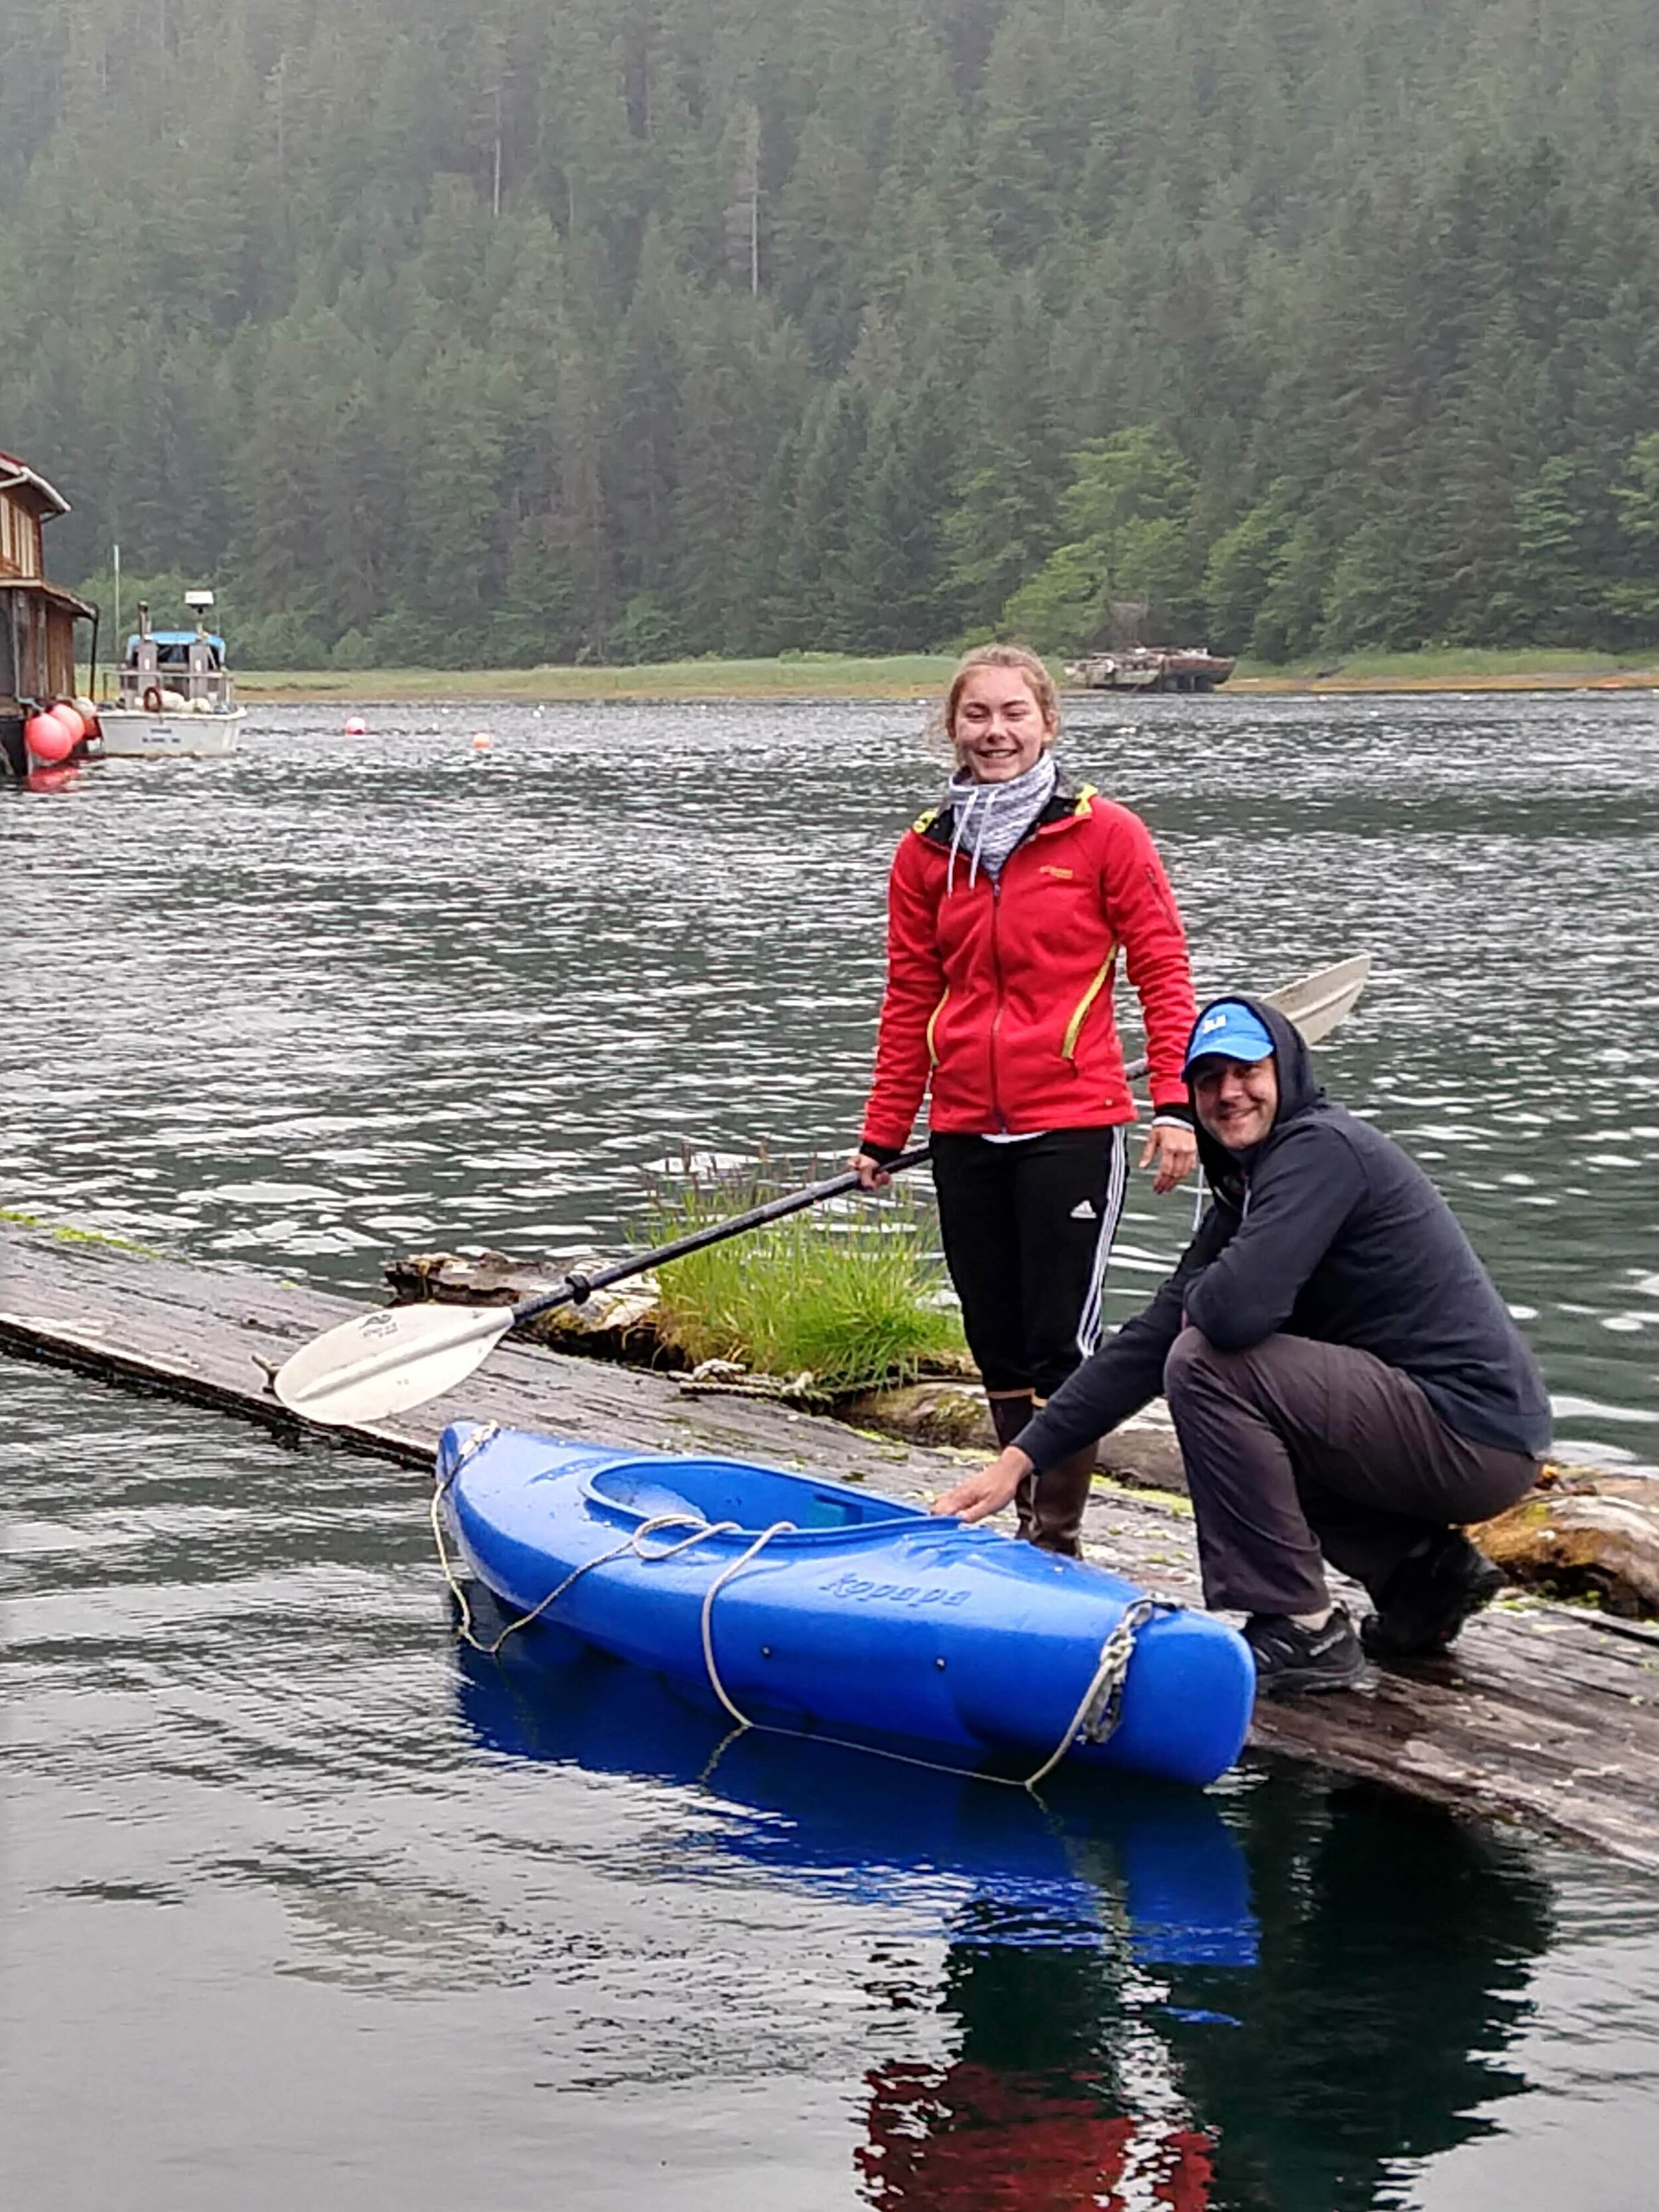 I came of age in this wild place, but this was the first time we brought Roger's youngest daughter to Alaska. They are trying to navigate how to get into a kayak from a floating log. Taken @  Camp Coogin Bay  at my parents' floathouse in Southeast Alaska.